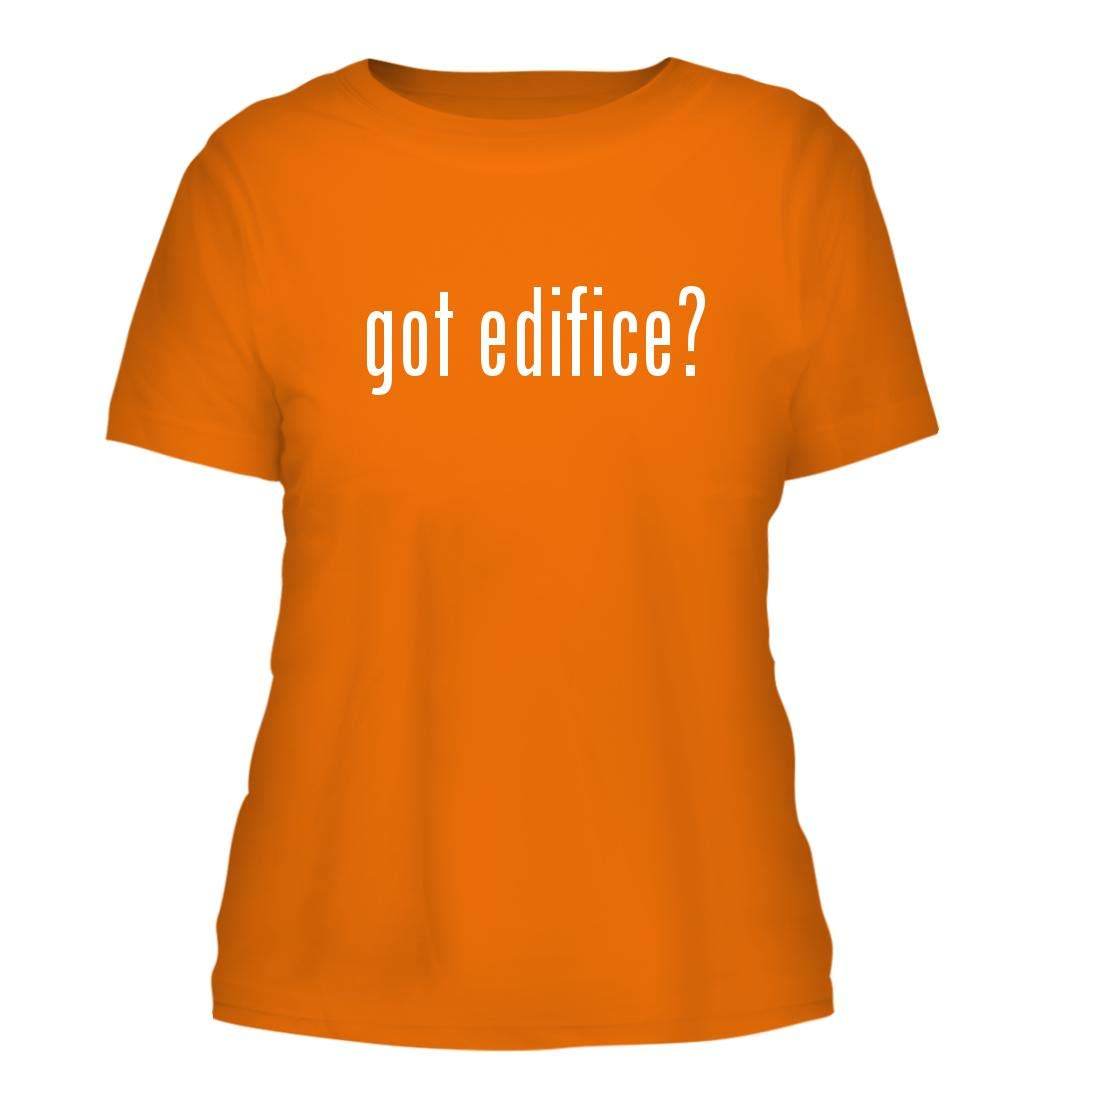 got Edifice? - A Nice Misses Cut Women's Short Sleeve T-Shirt, Orange, Large by Shirt Me Up